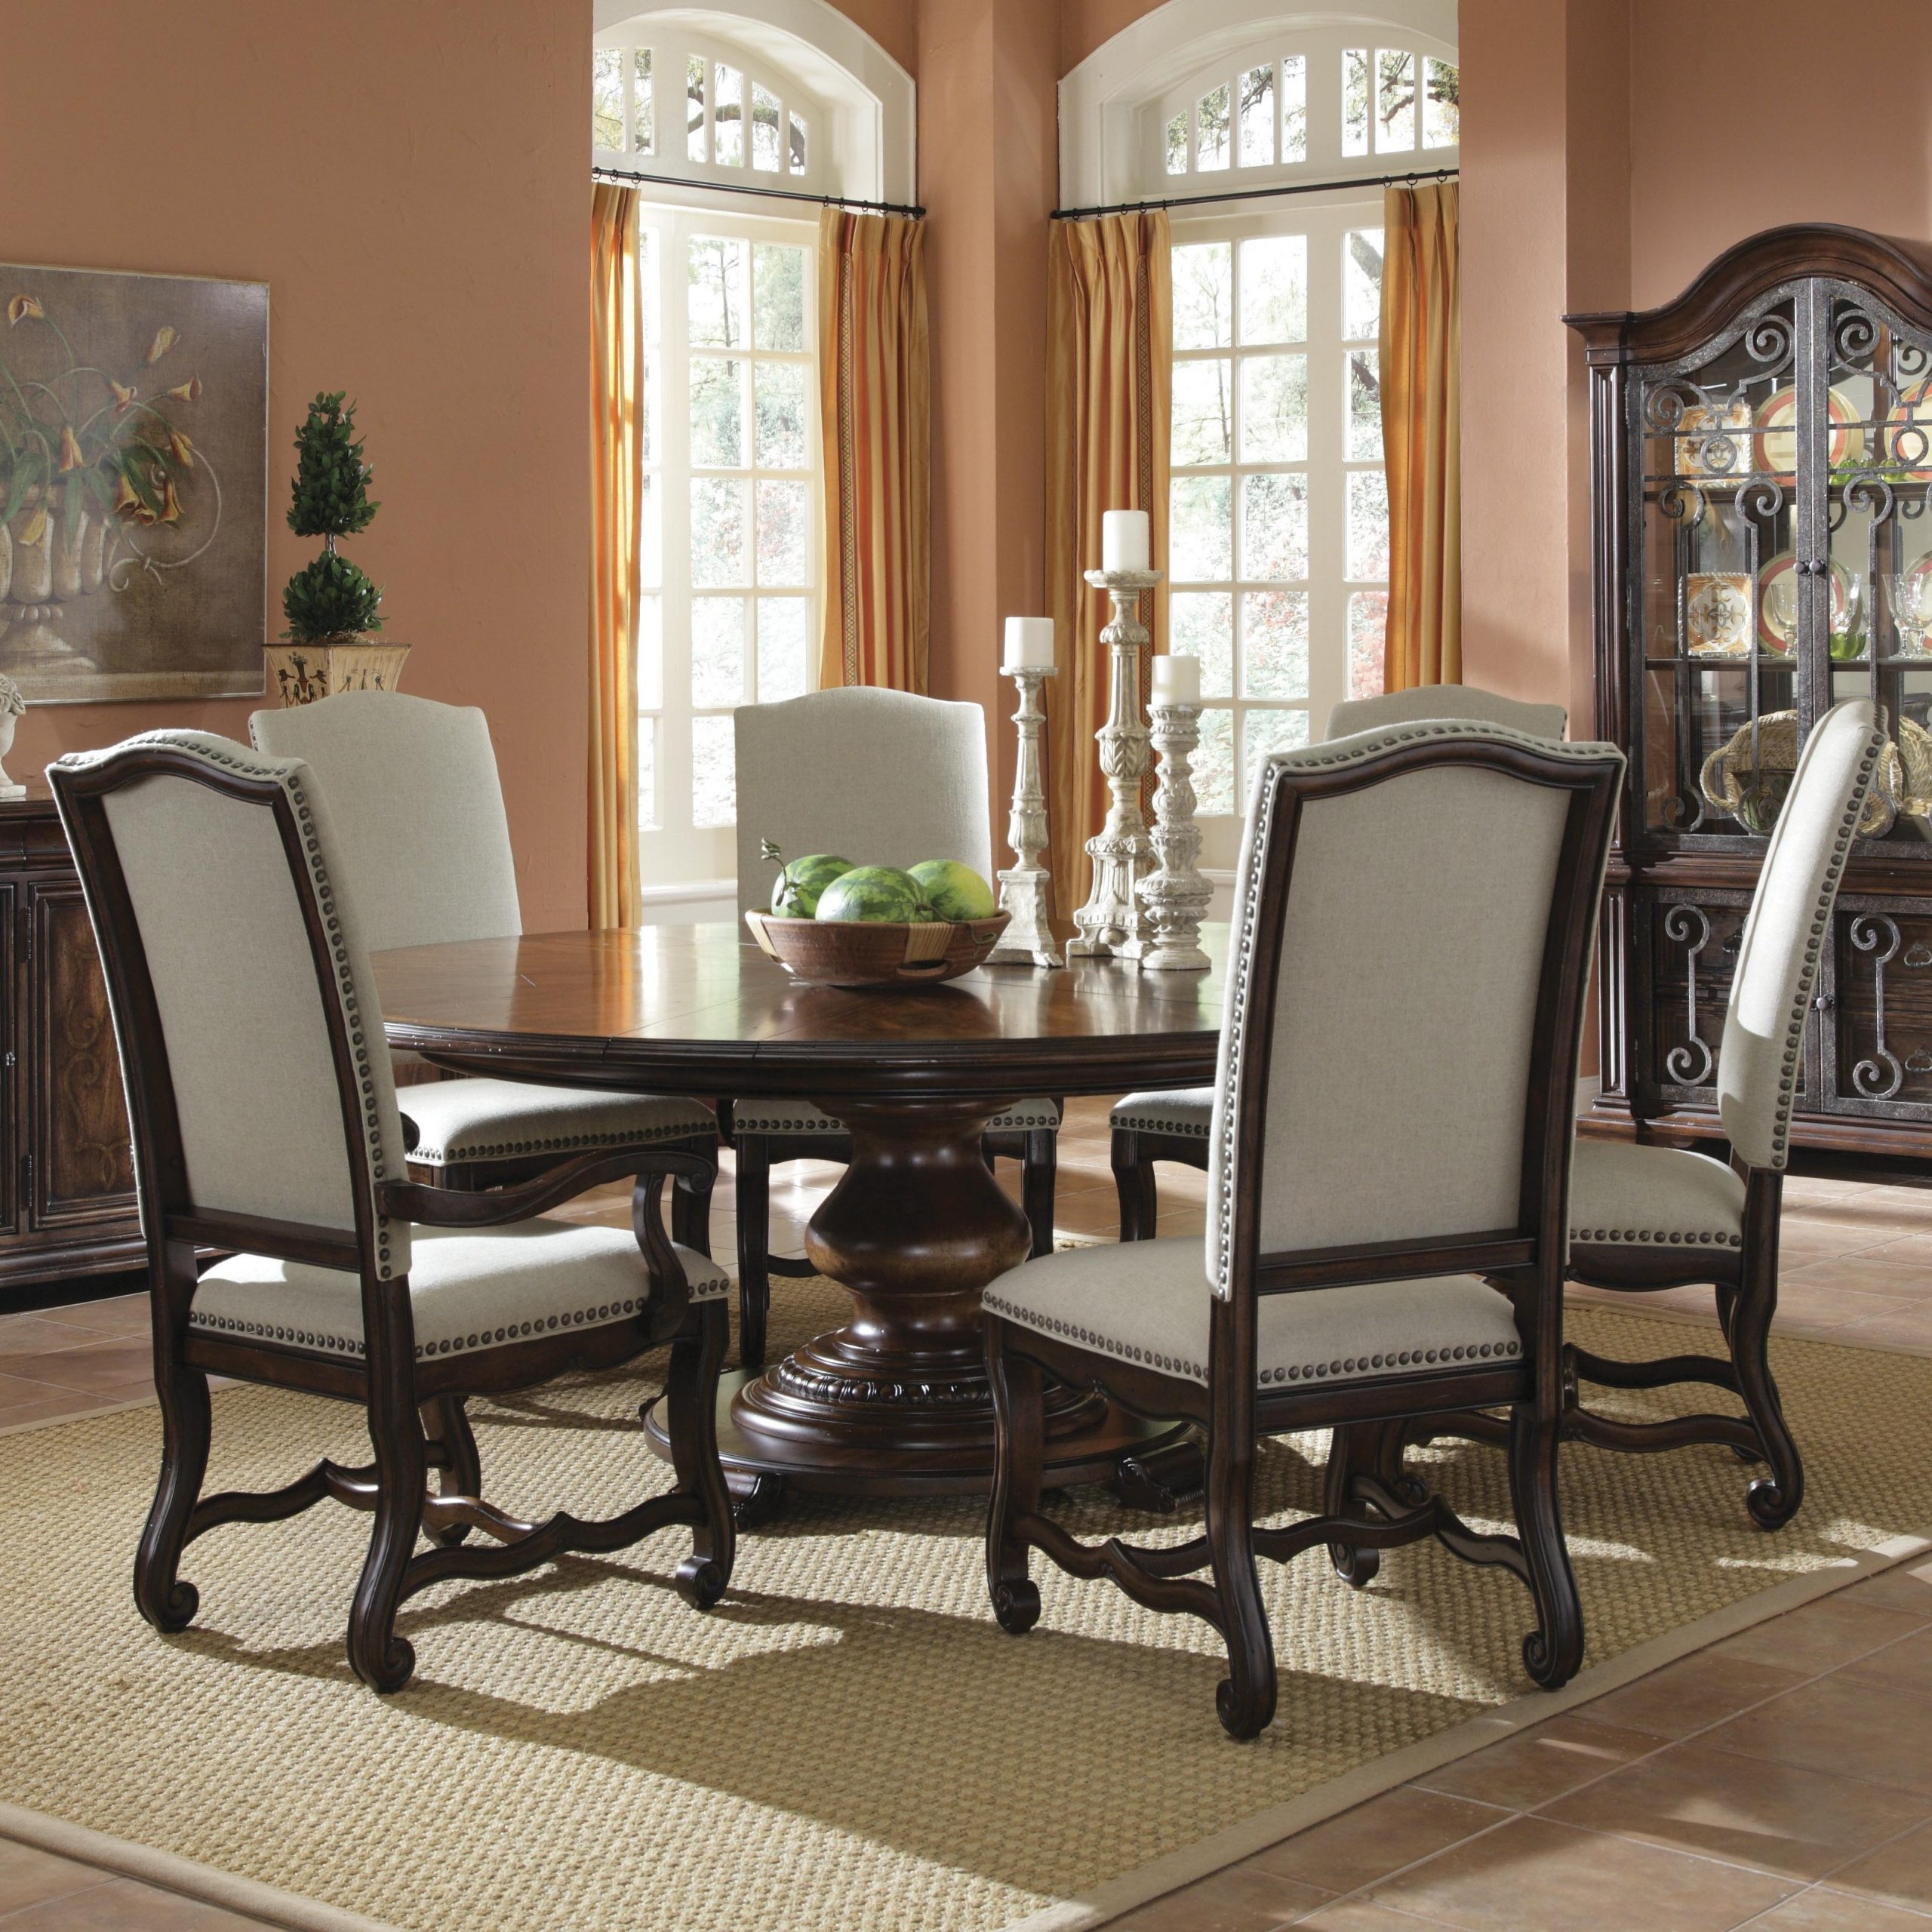 Awesome Round Dining Table Set For 6 Popular Modern With Best And Newest Elegance Large Round Dining Tables (View 20 of 25)